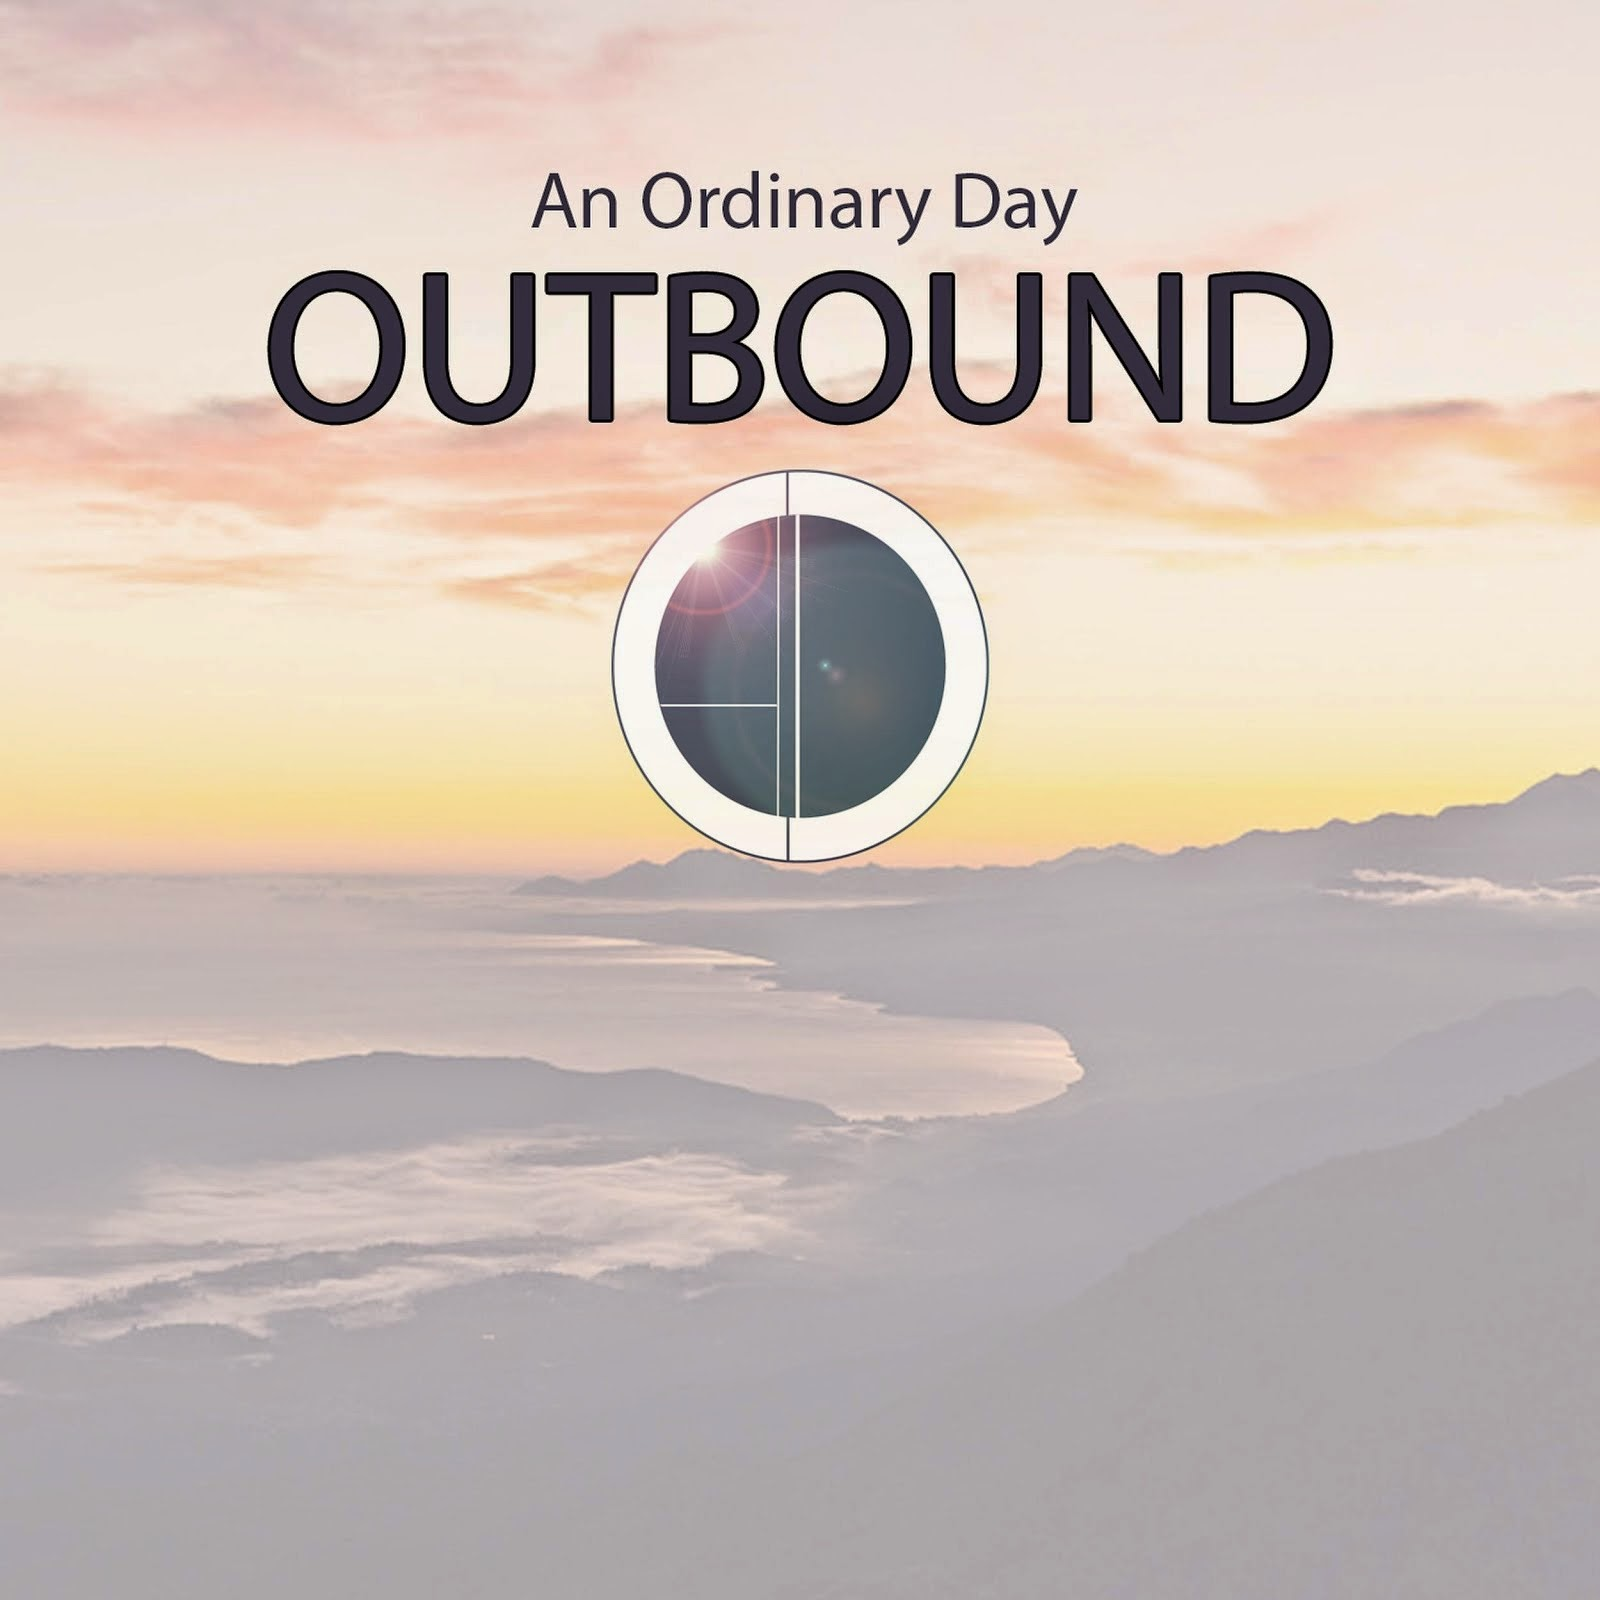 An Ordinary Day - Outbound